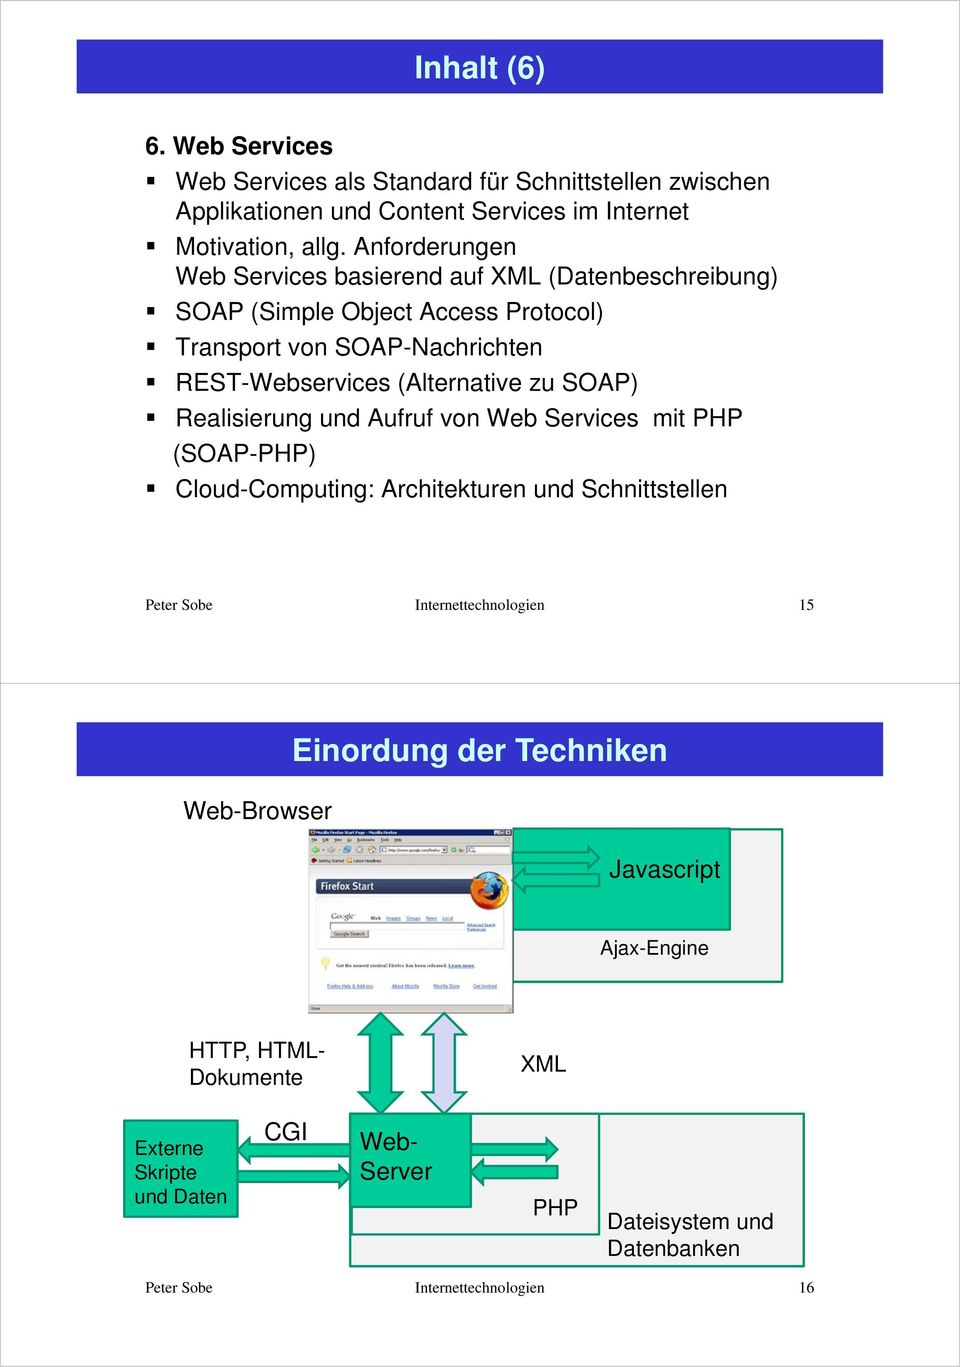 REST-Webservices (Alternative zu SOAP) Realisierung und Aufruf von Web Services mit PHP (SOAP-PHP) Cloud-Computing: Architekturen und